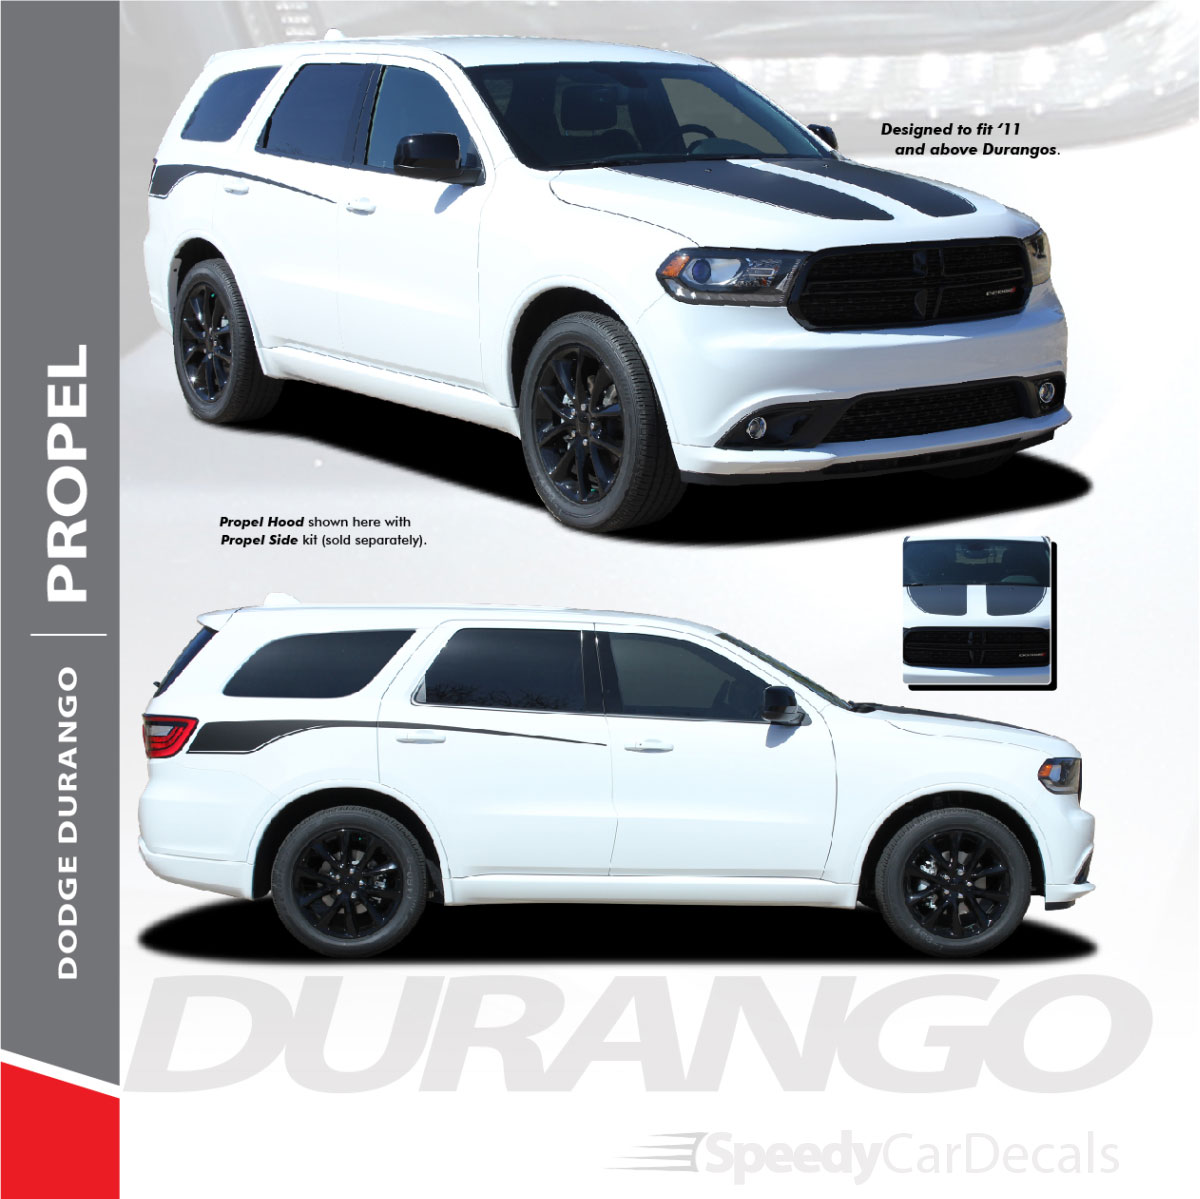 Headlamp Trail Accents Vinyl Graphic Decal Stripe for Dodge Durango 2011 /& Up